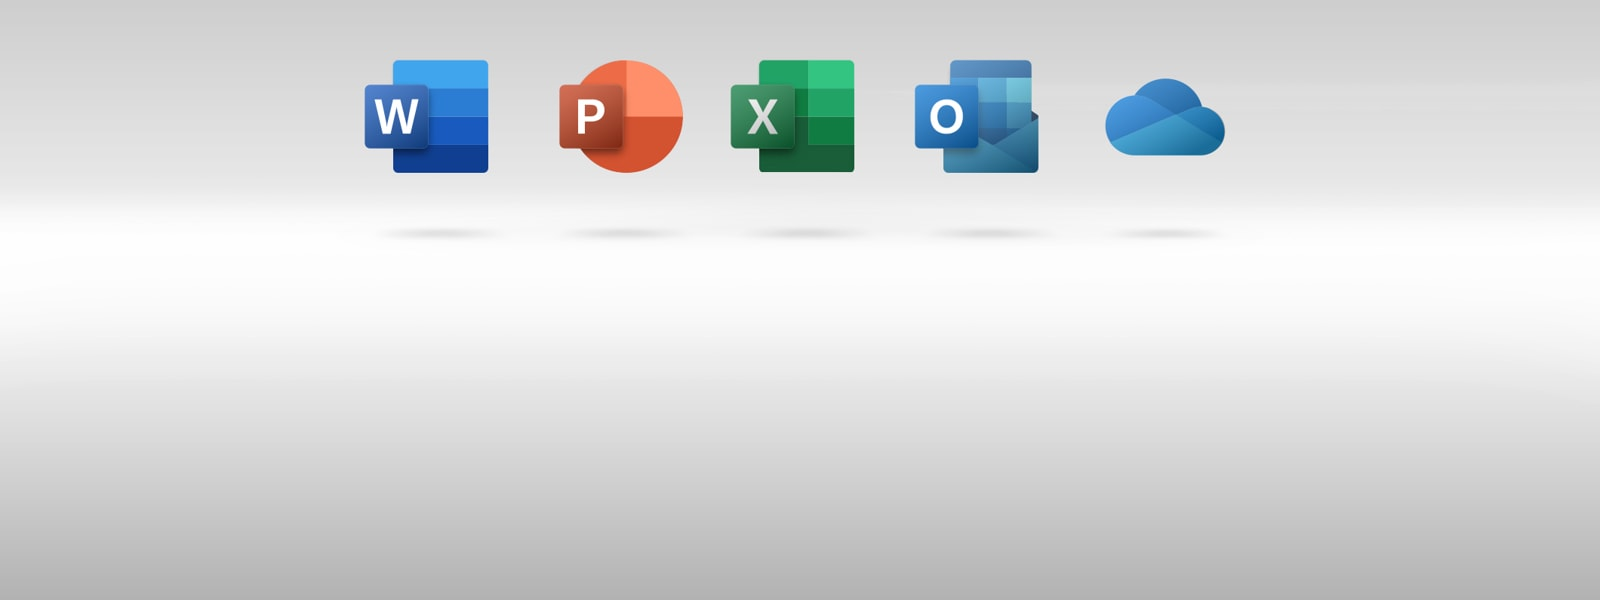 Icons for Microsoft Word, PowerPoint, Excel, Outlook, and OneDrive